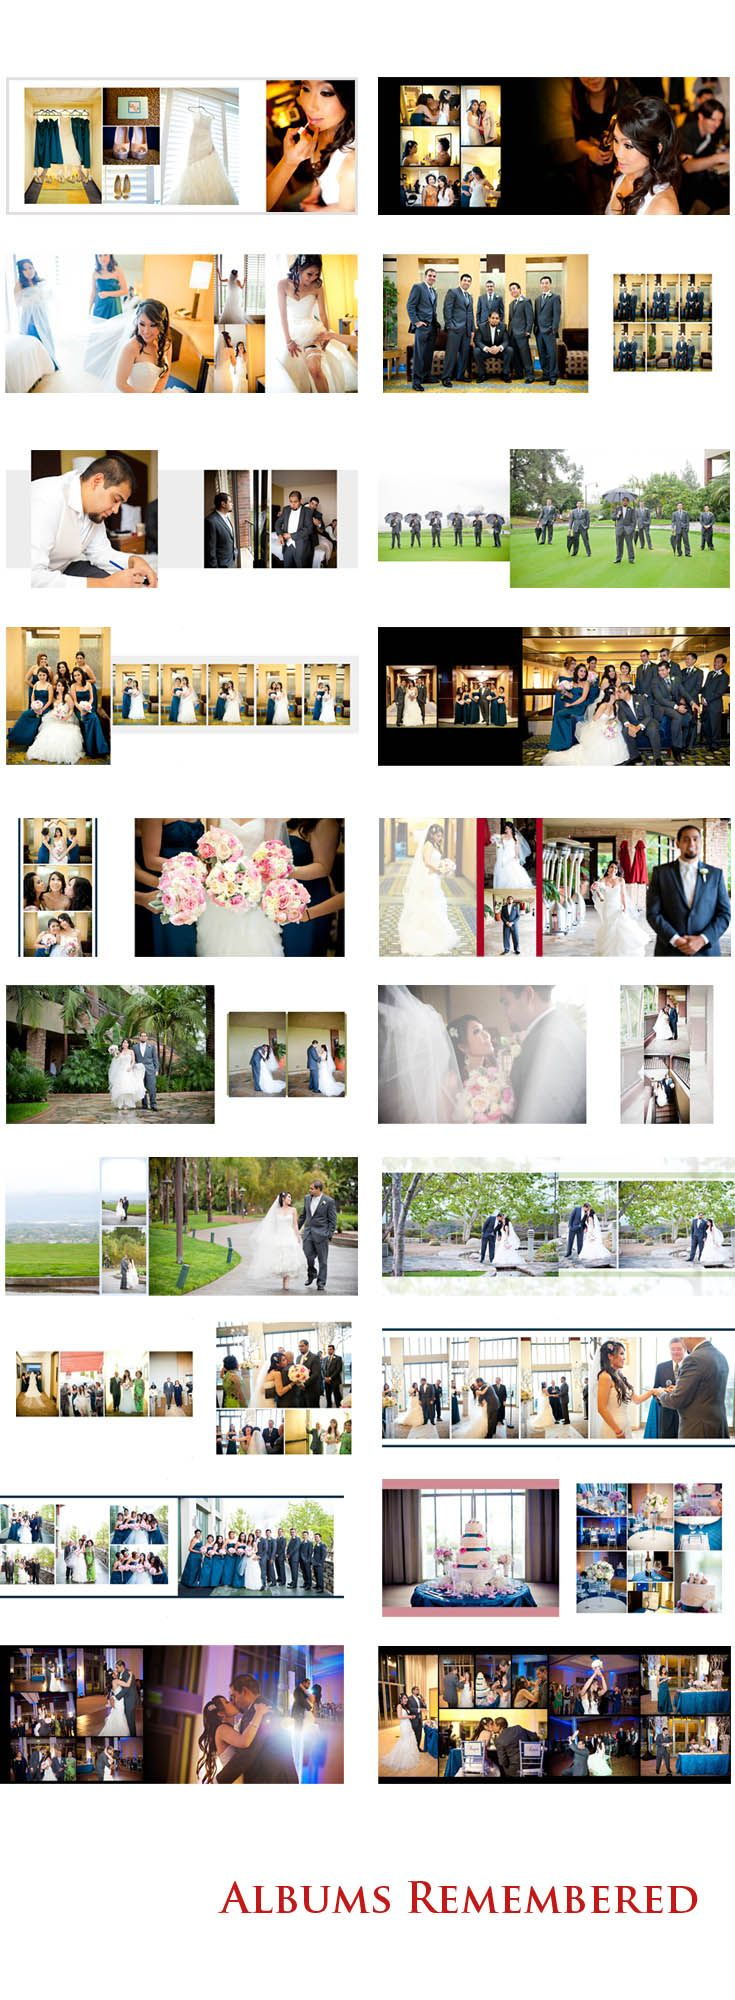 http://www.albumsremembered.com/ Free #wedding #album #design service by Albums Remembered